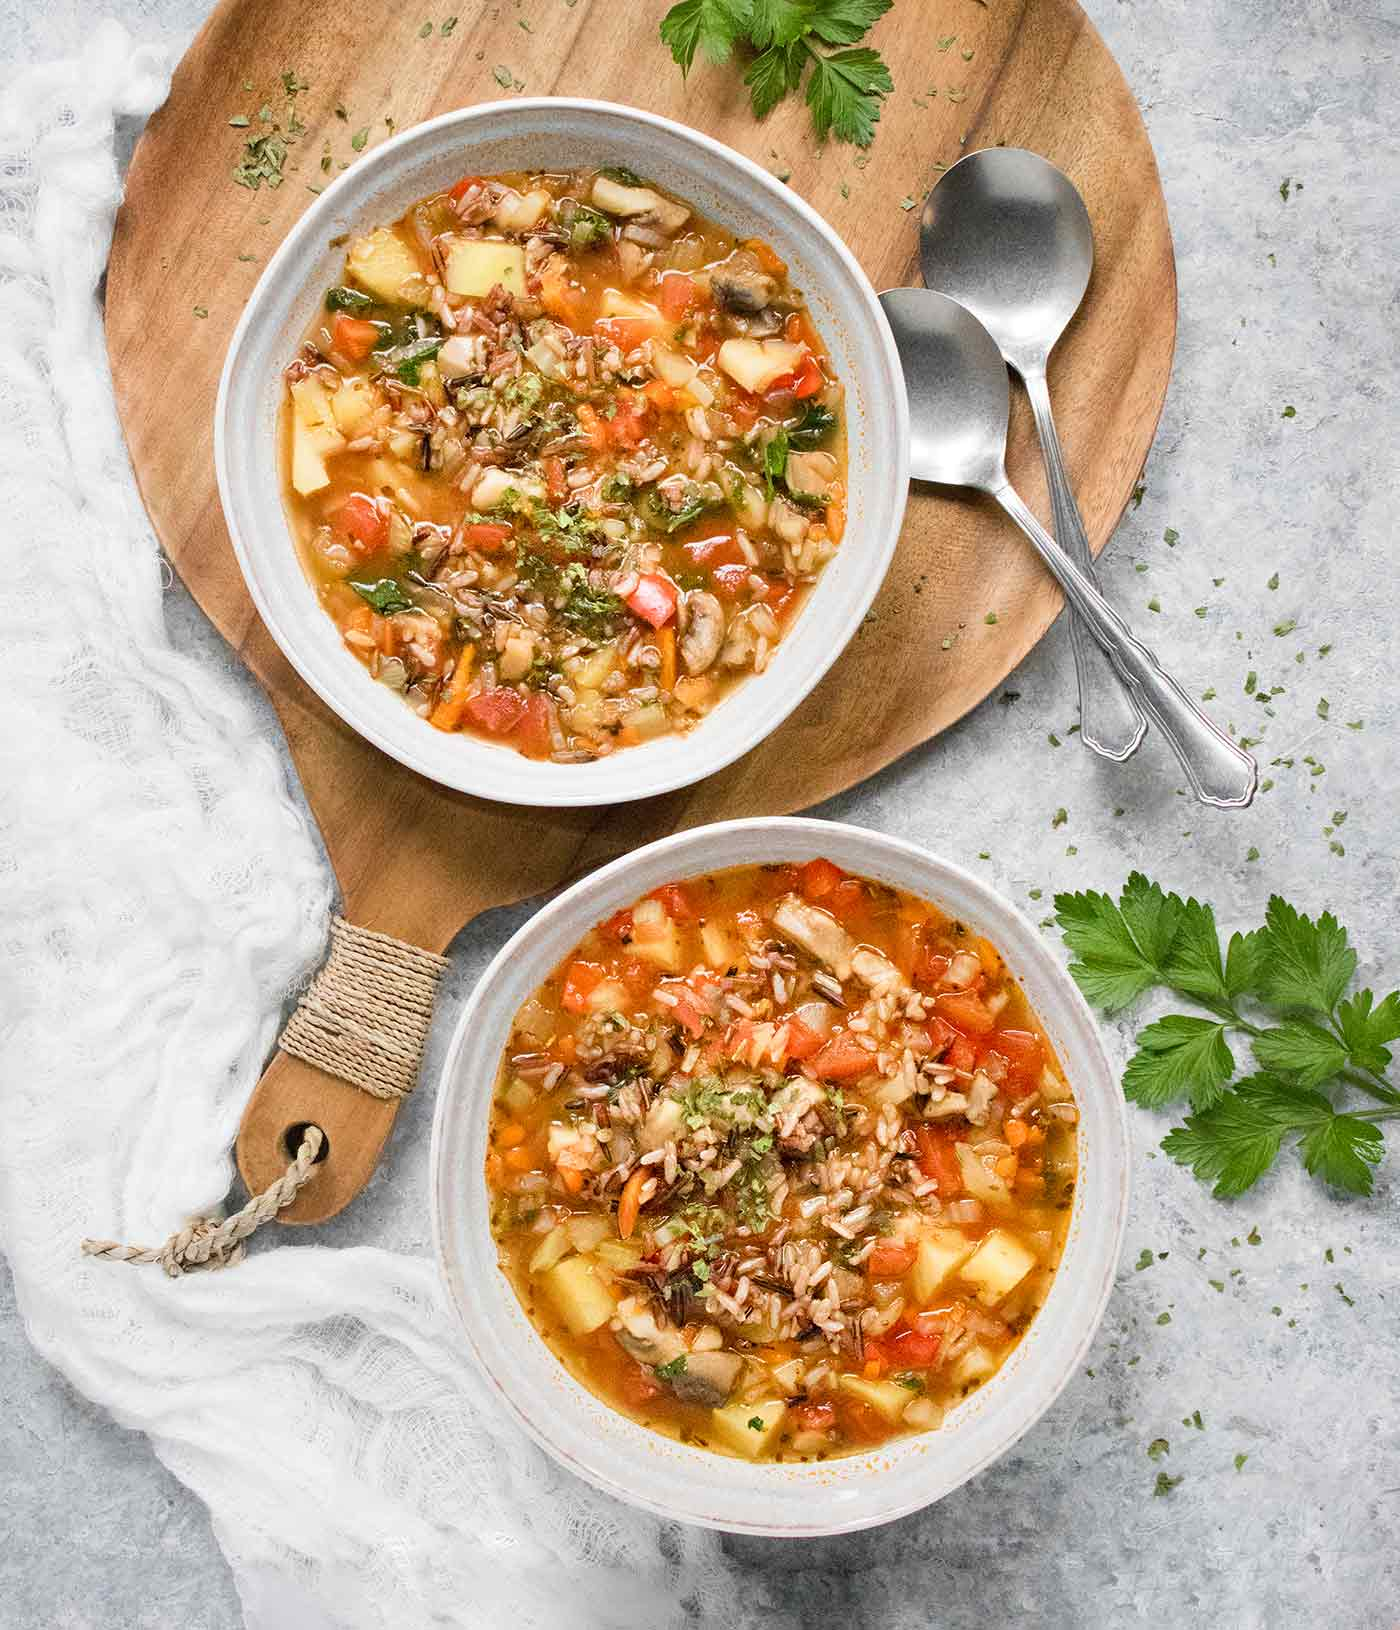 Two bowls of Hearty Vegetable Wild Rice Soup